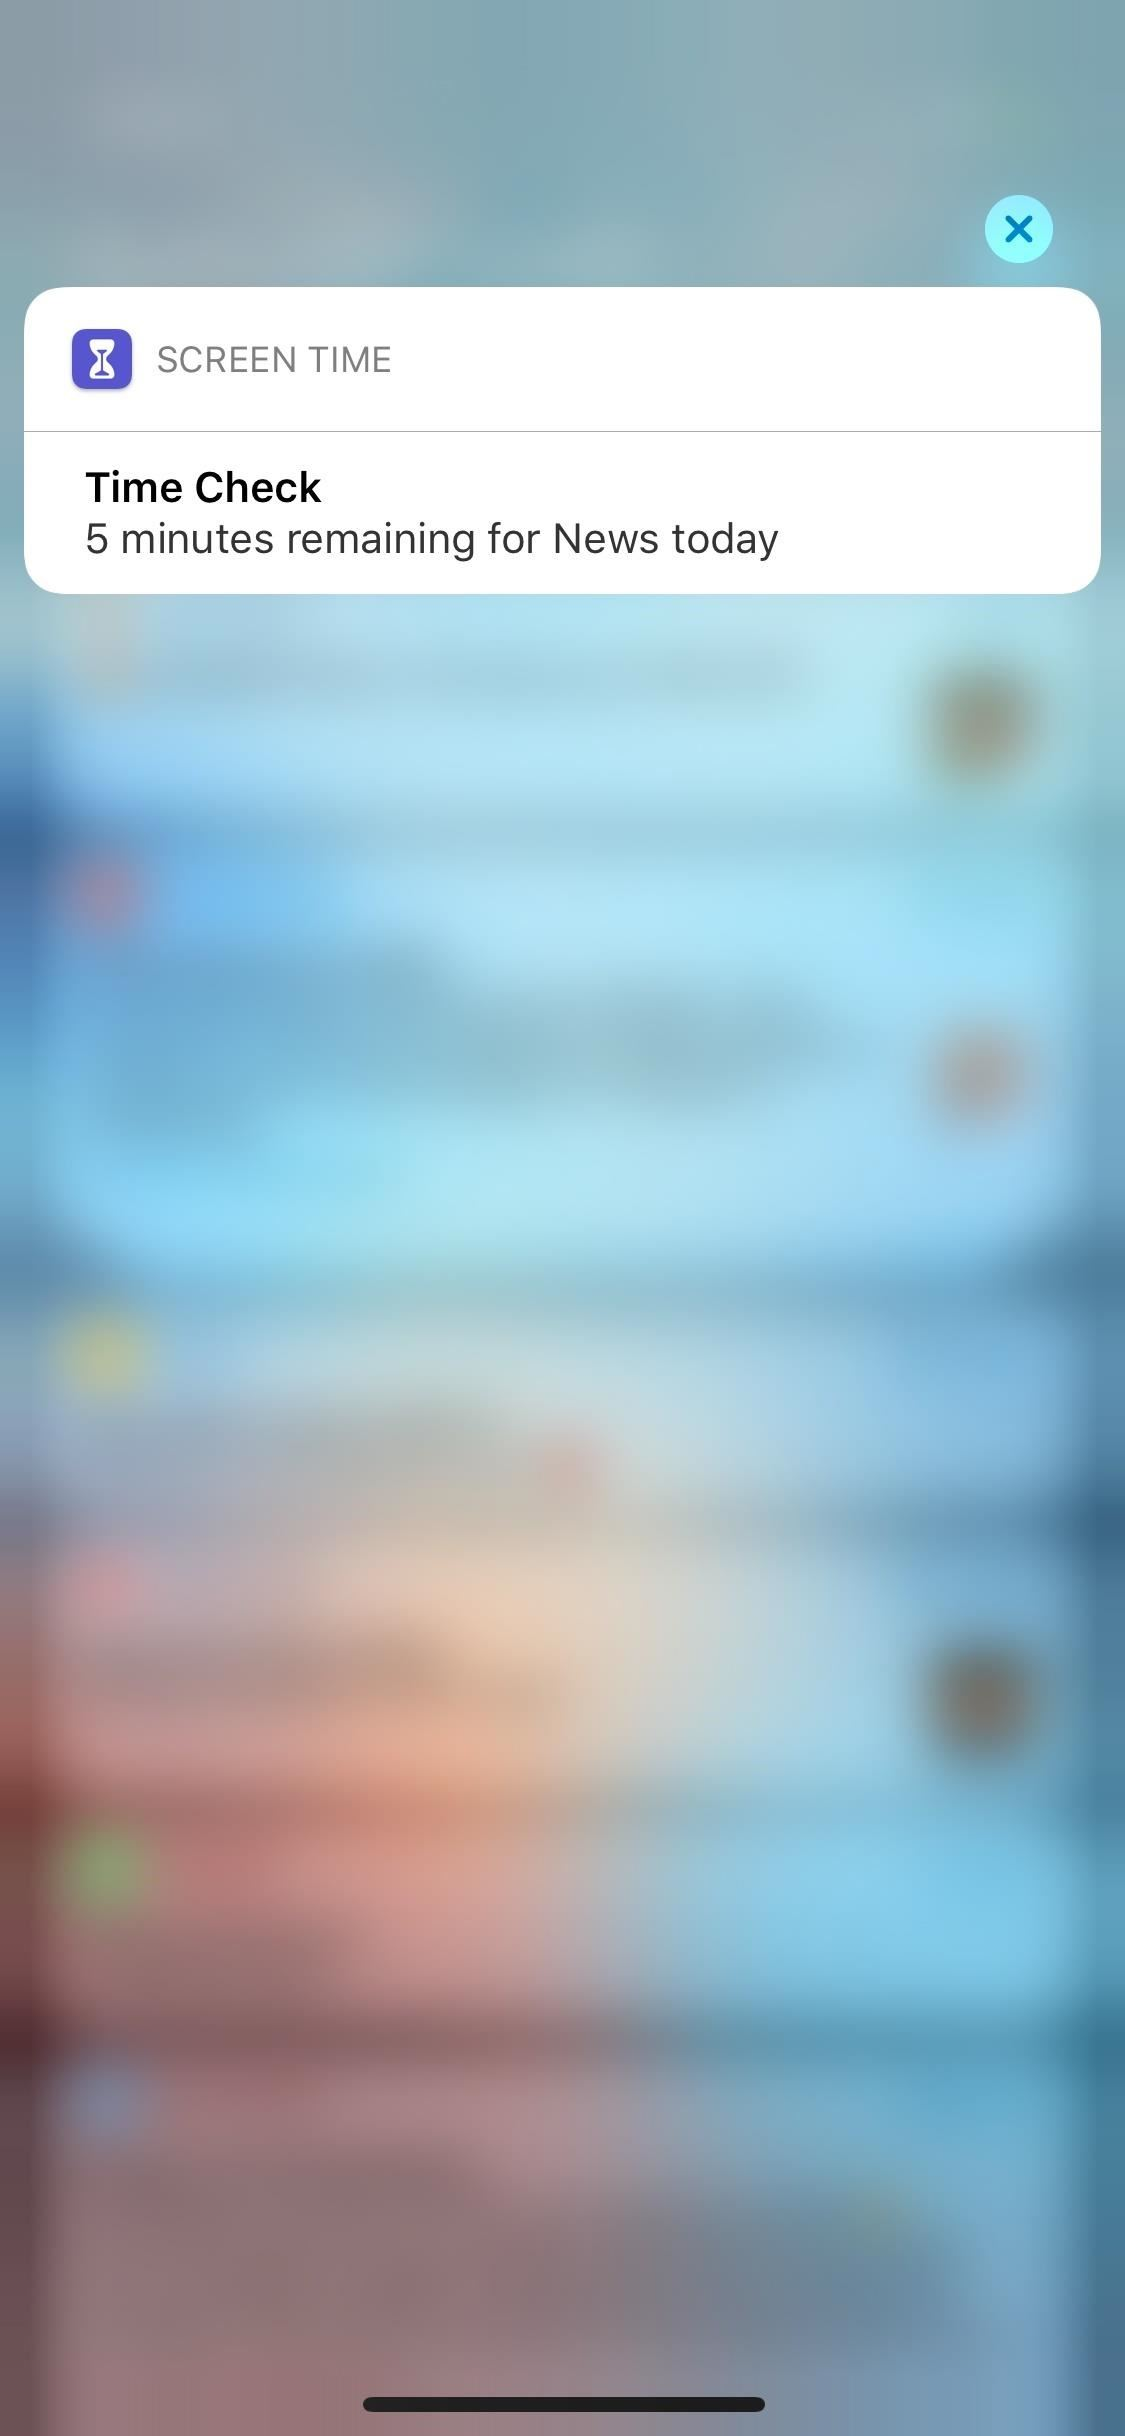 How to Set App Limits on Your iPhone in iOS 12 to Restrict All-Day Access to Games & Other Addictive Apps